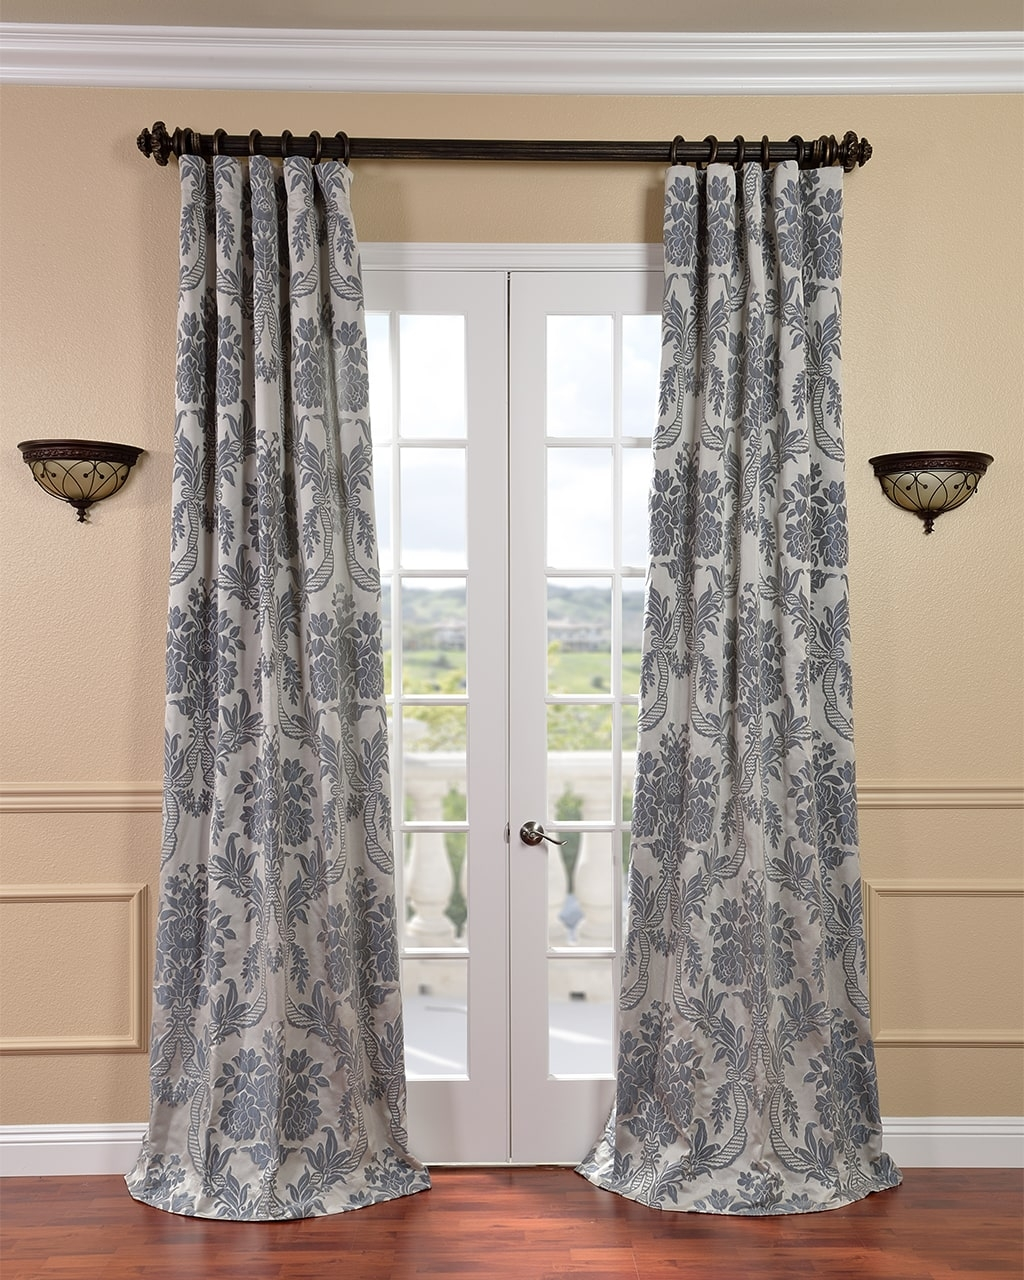 120 Inches Curtains Drapes Shop The Best Brands Overstock With Ready Made Curtains 120 Inch Drop (Photo 6 of 15)